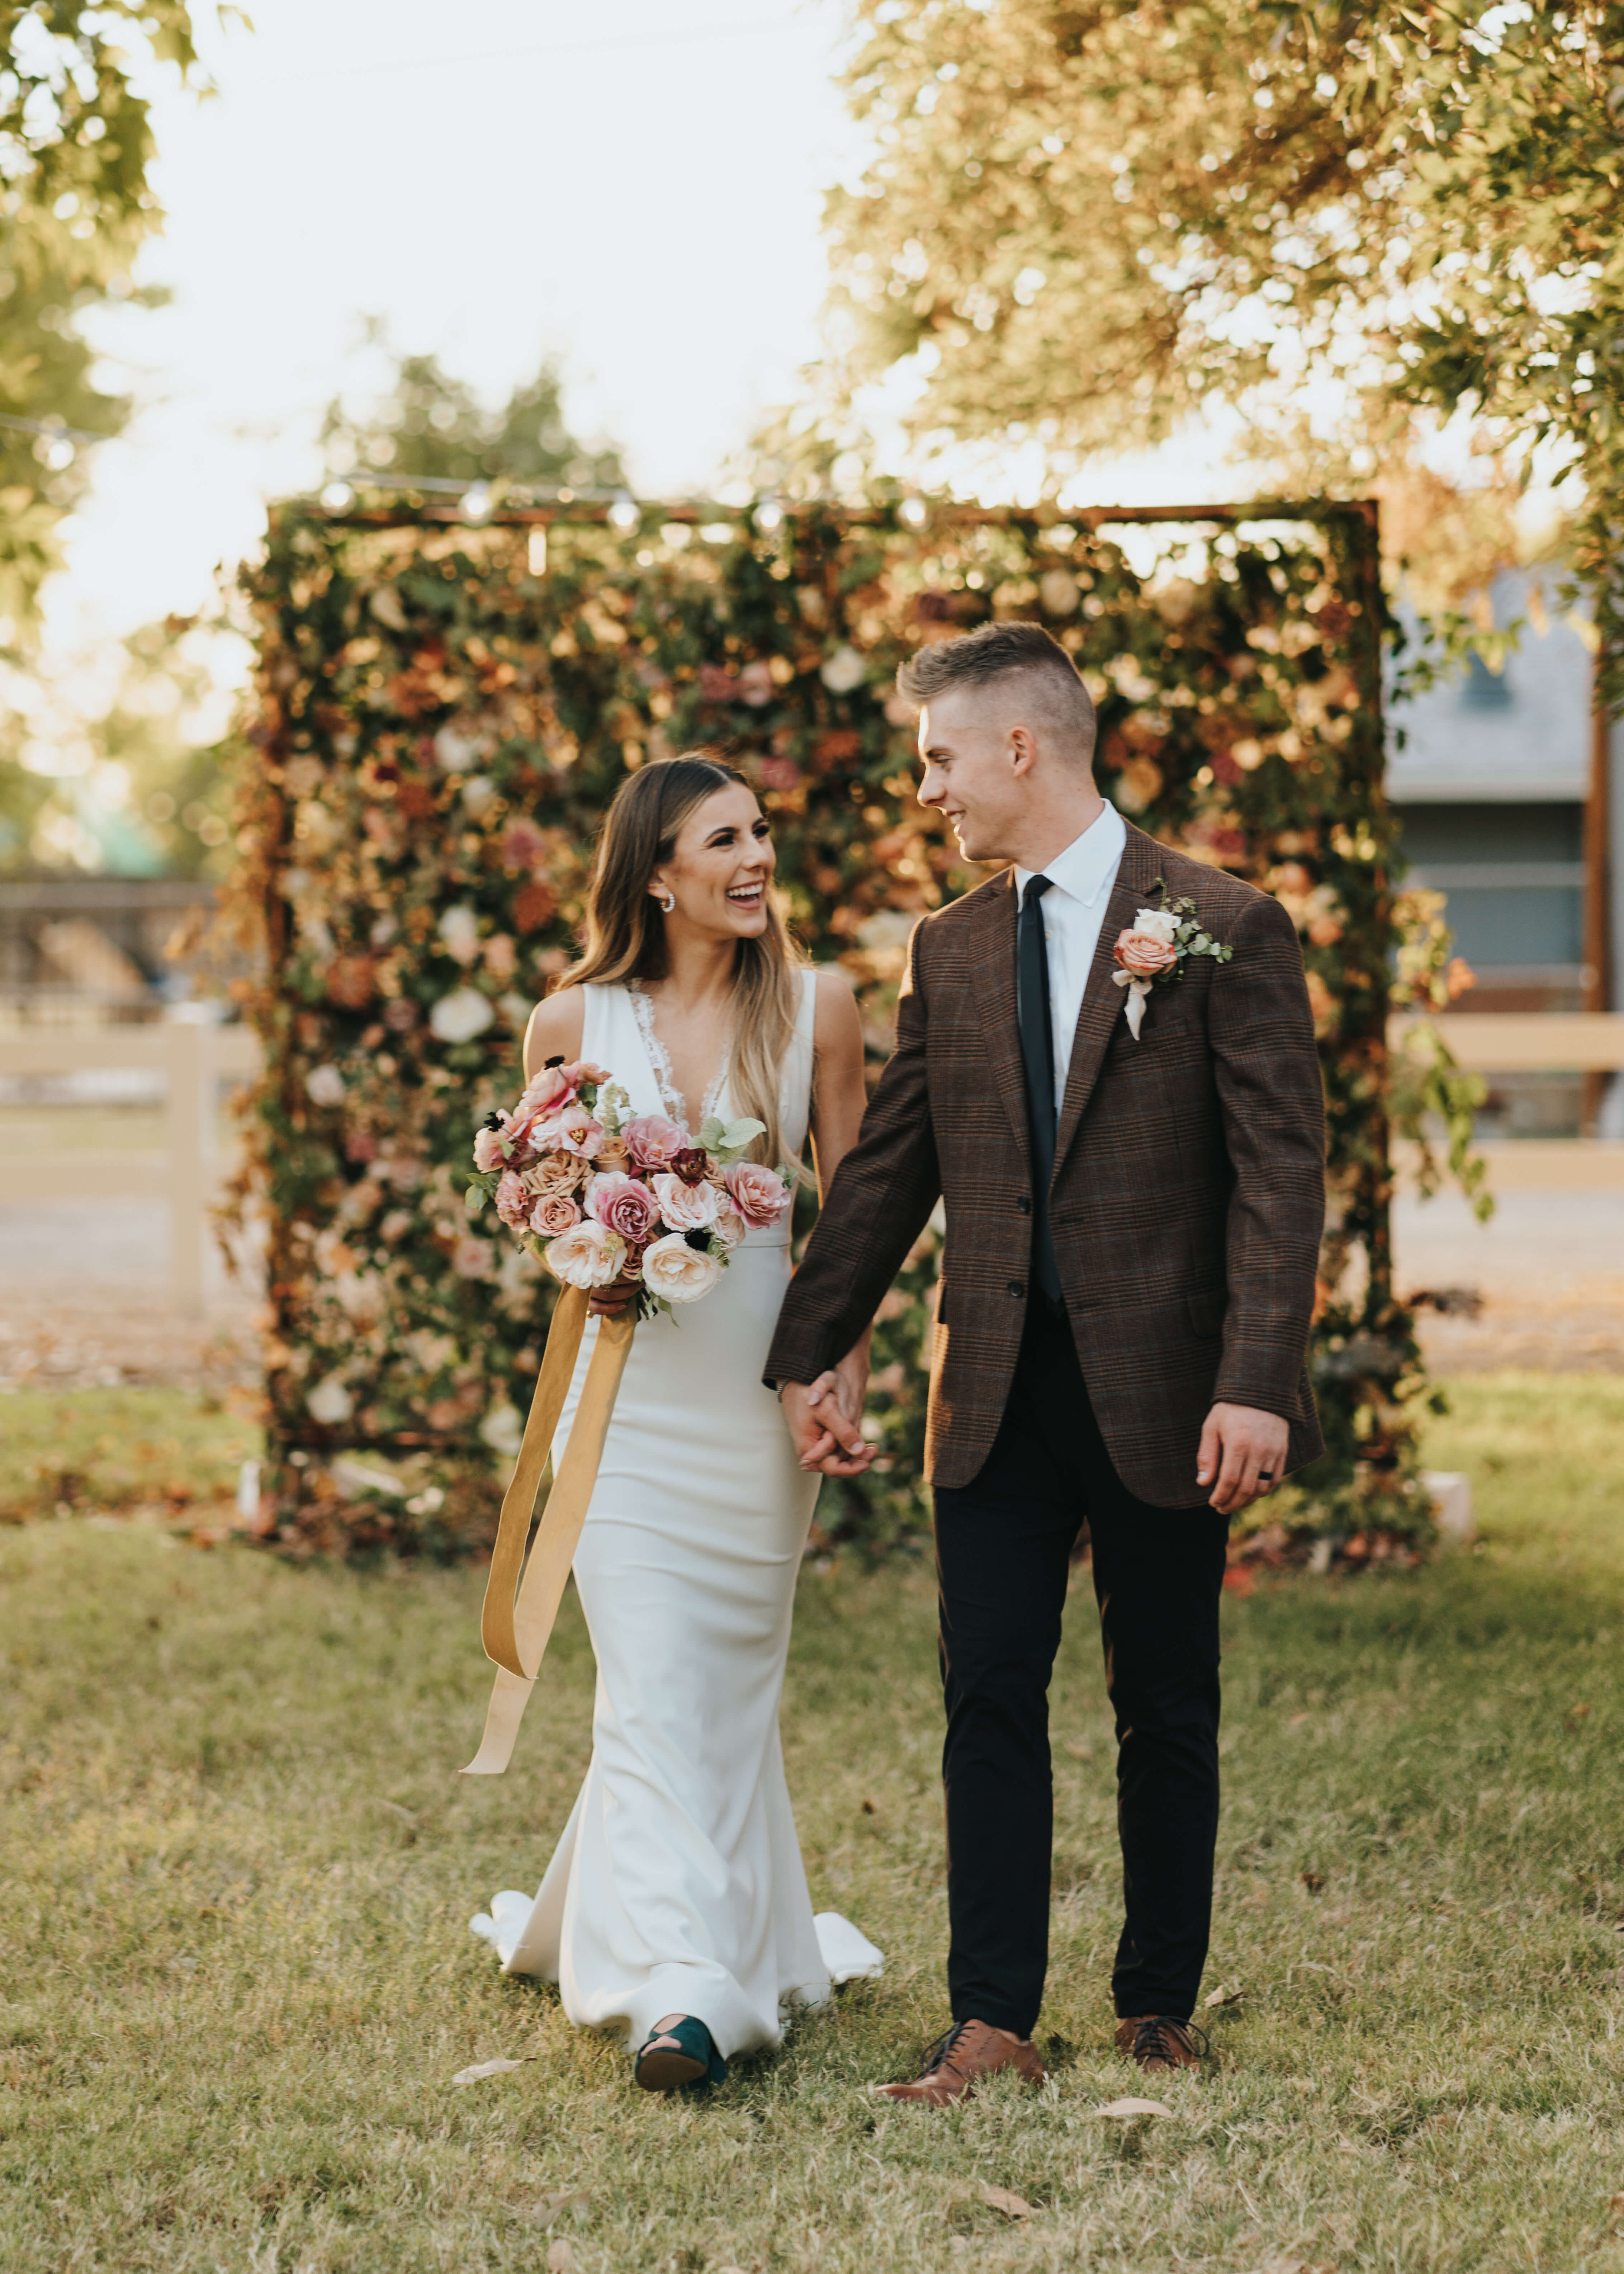 candid photo of bride and groom with floral wall backdrop